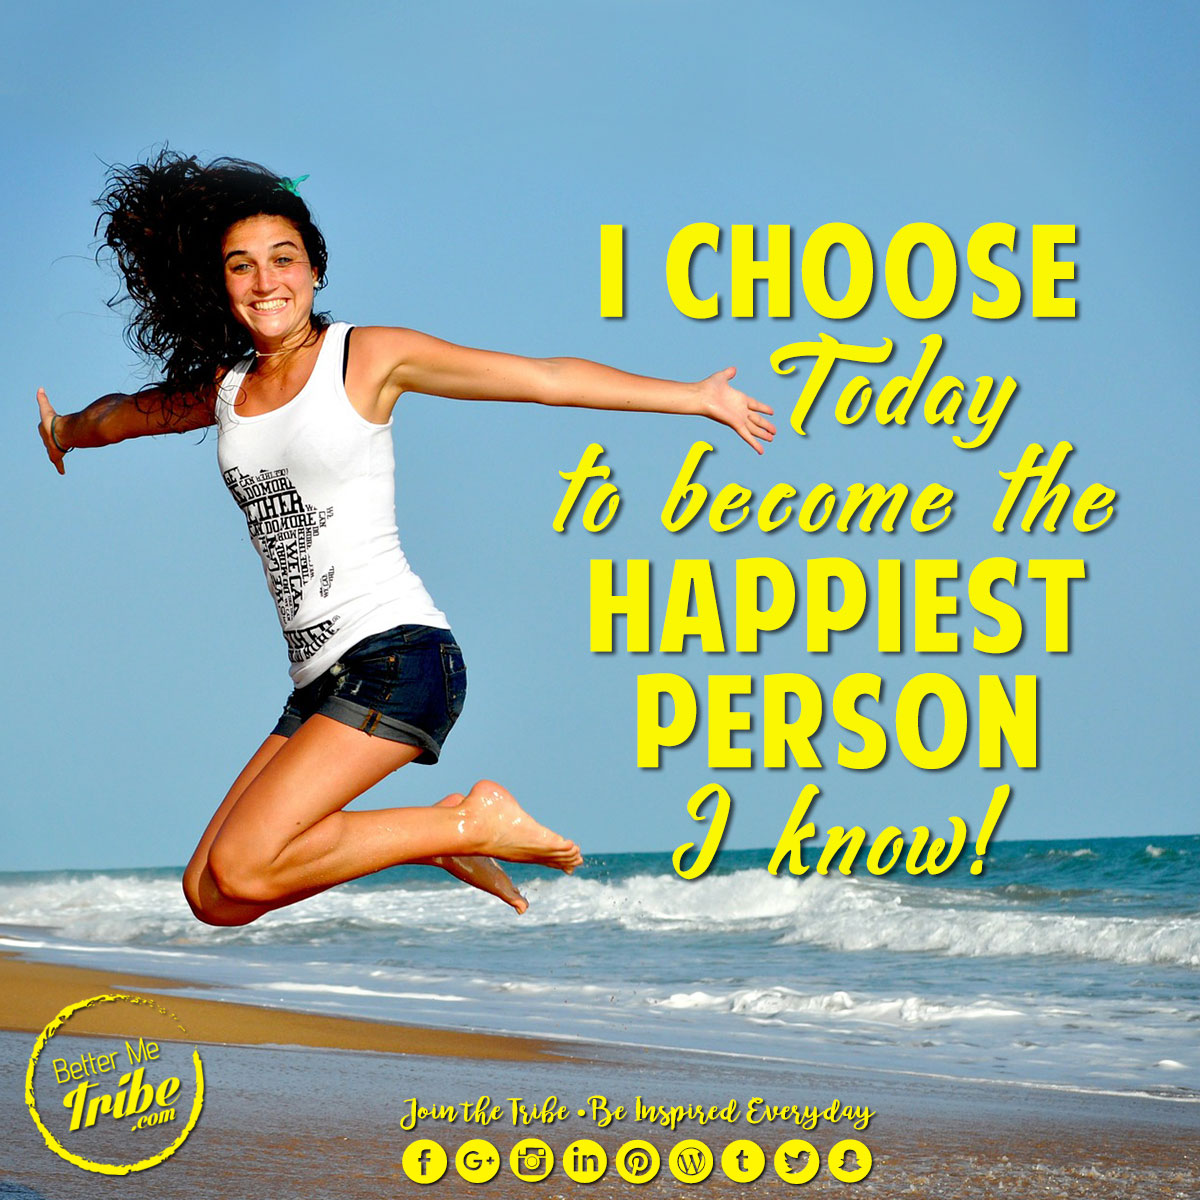 choosehappy-web